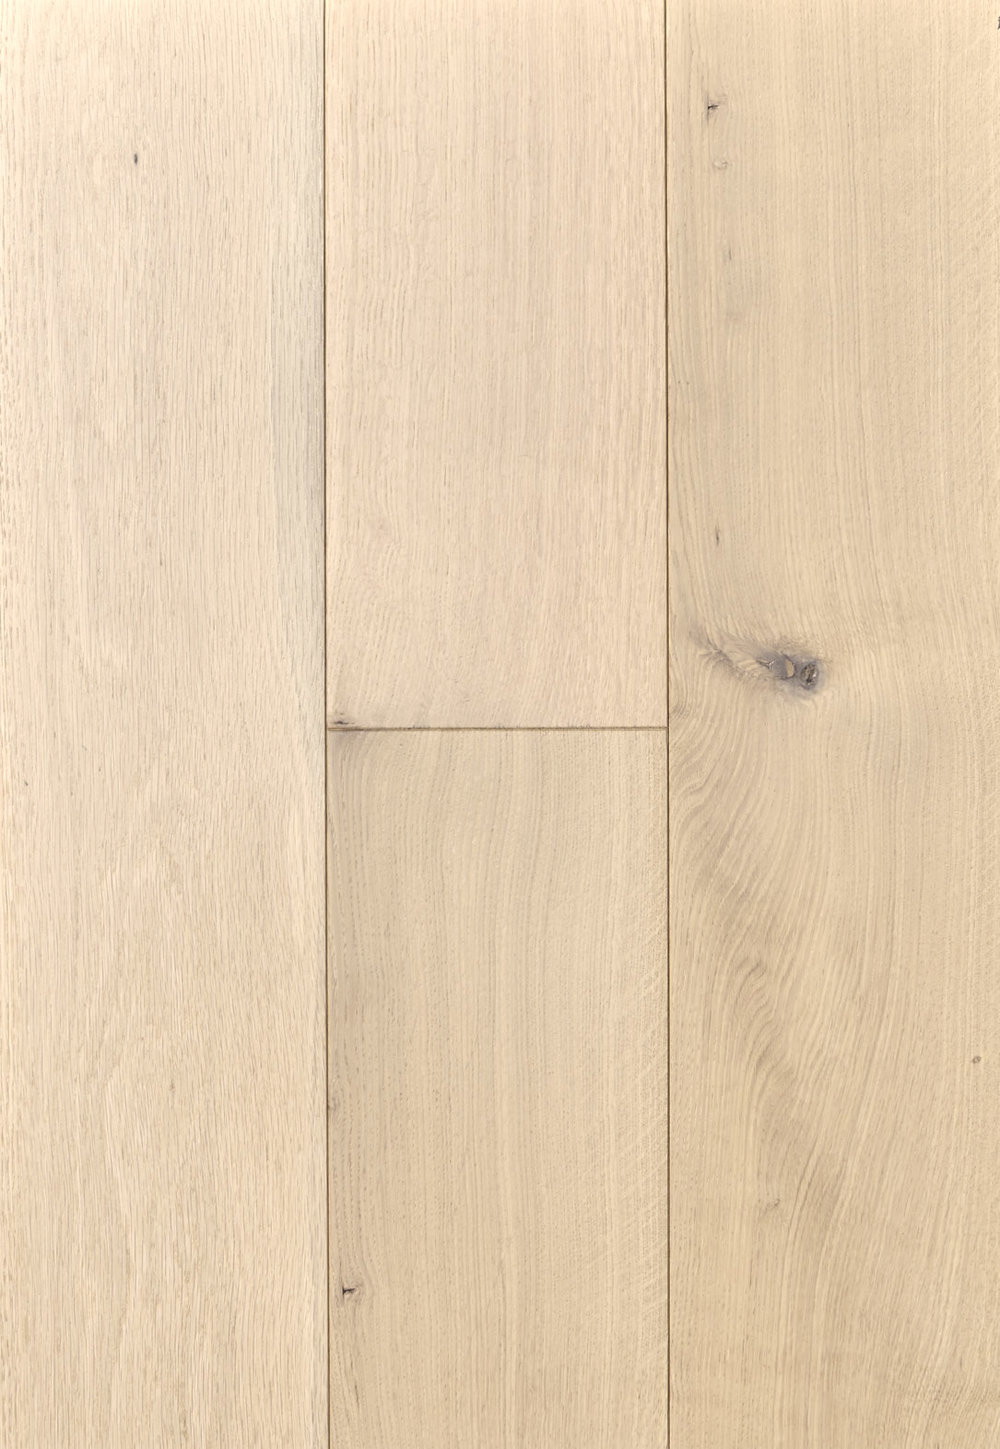 Bare-White Oak-Quarter Sawn.jpg